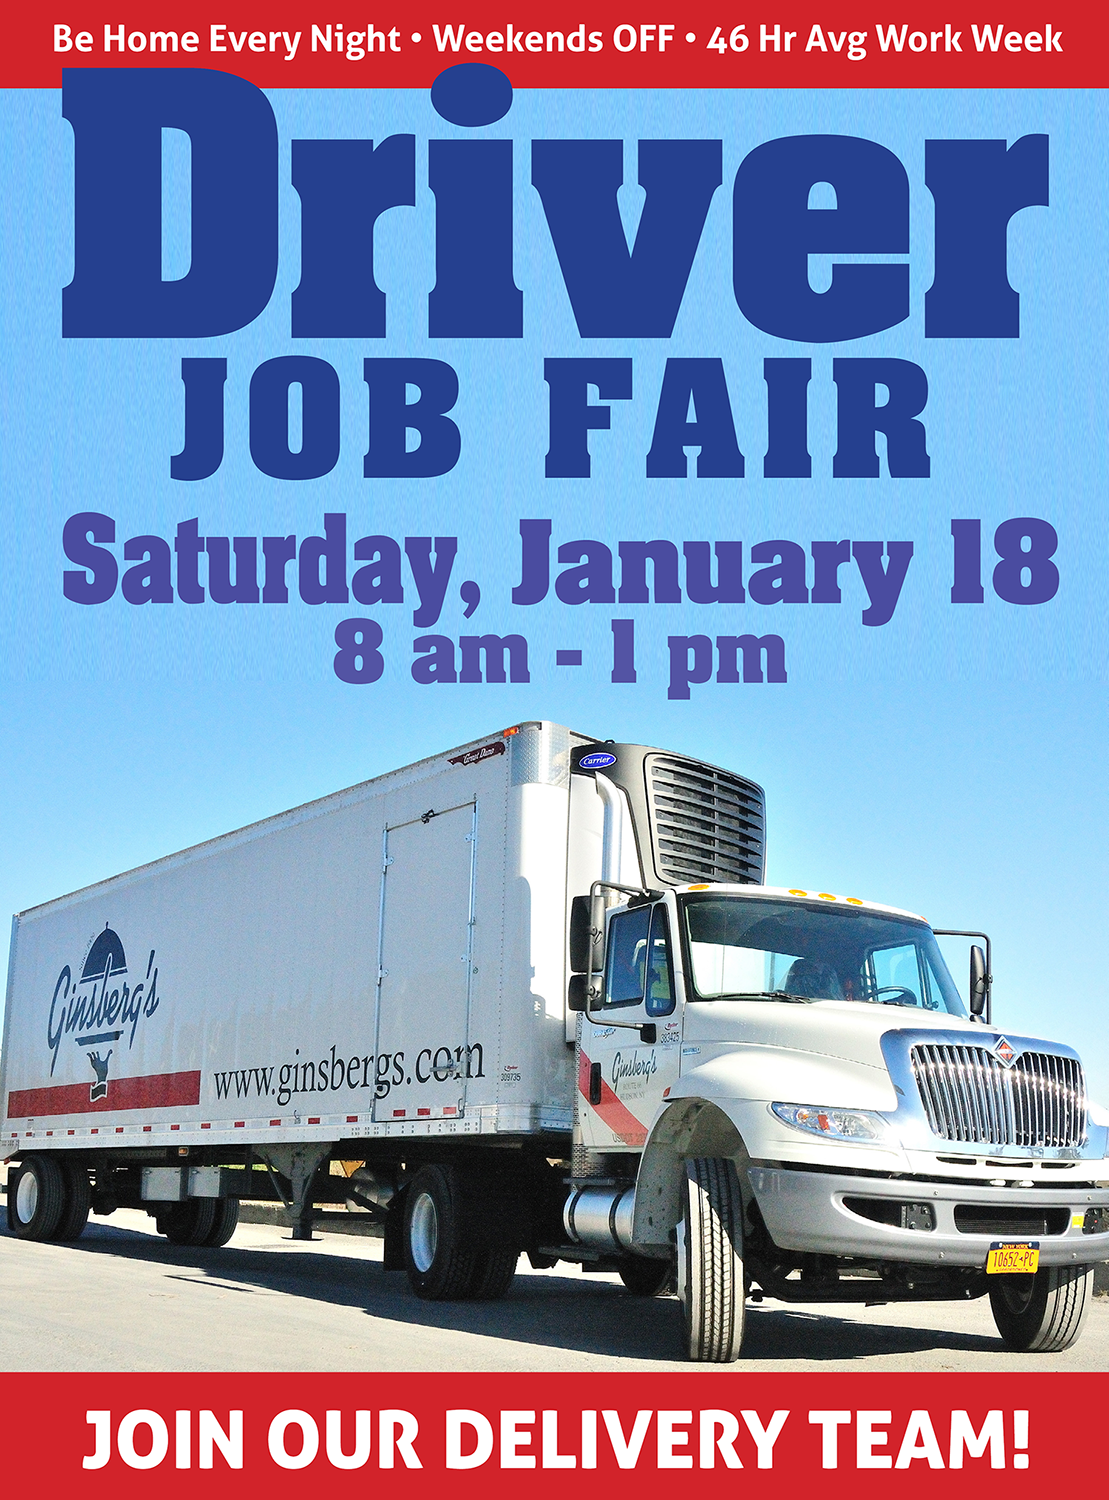 Delivery Driver Job Fair in Hudson New York